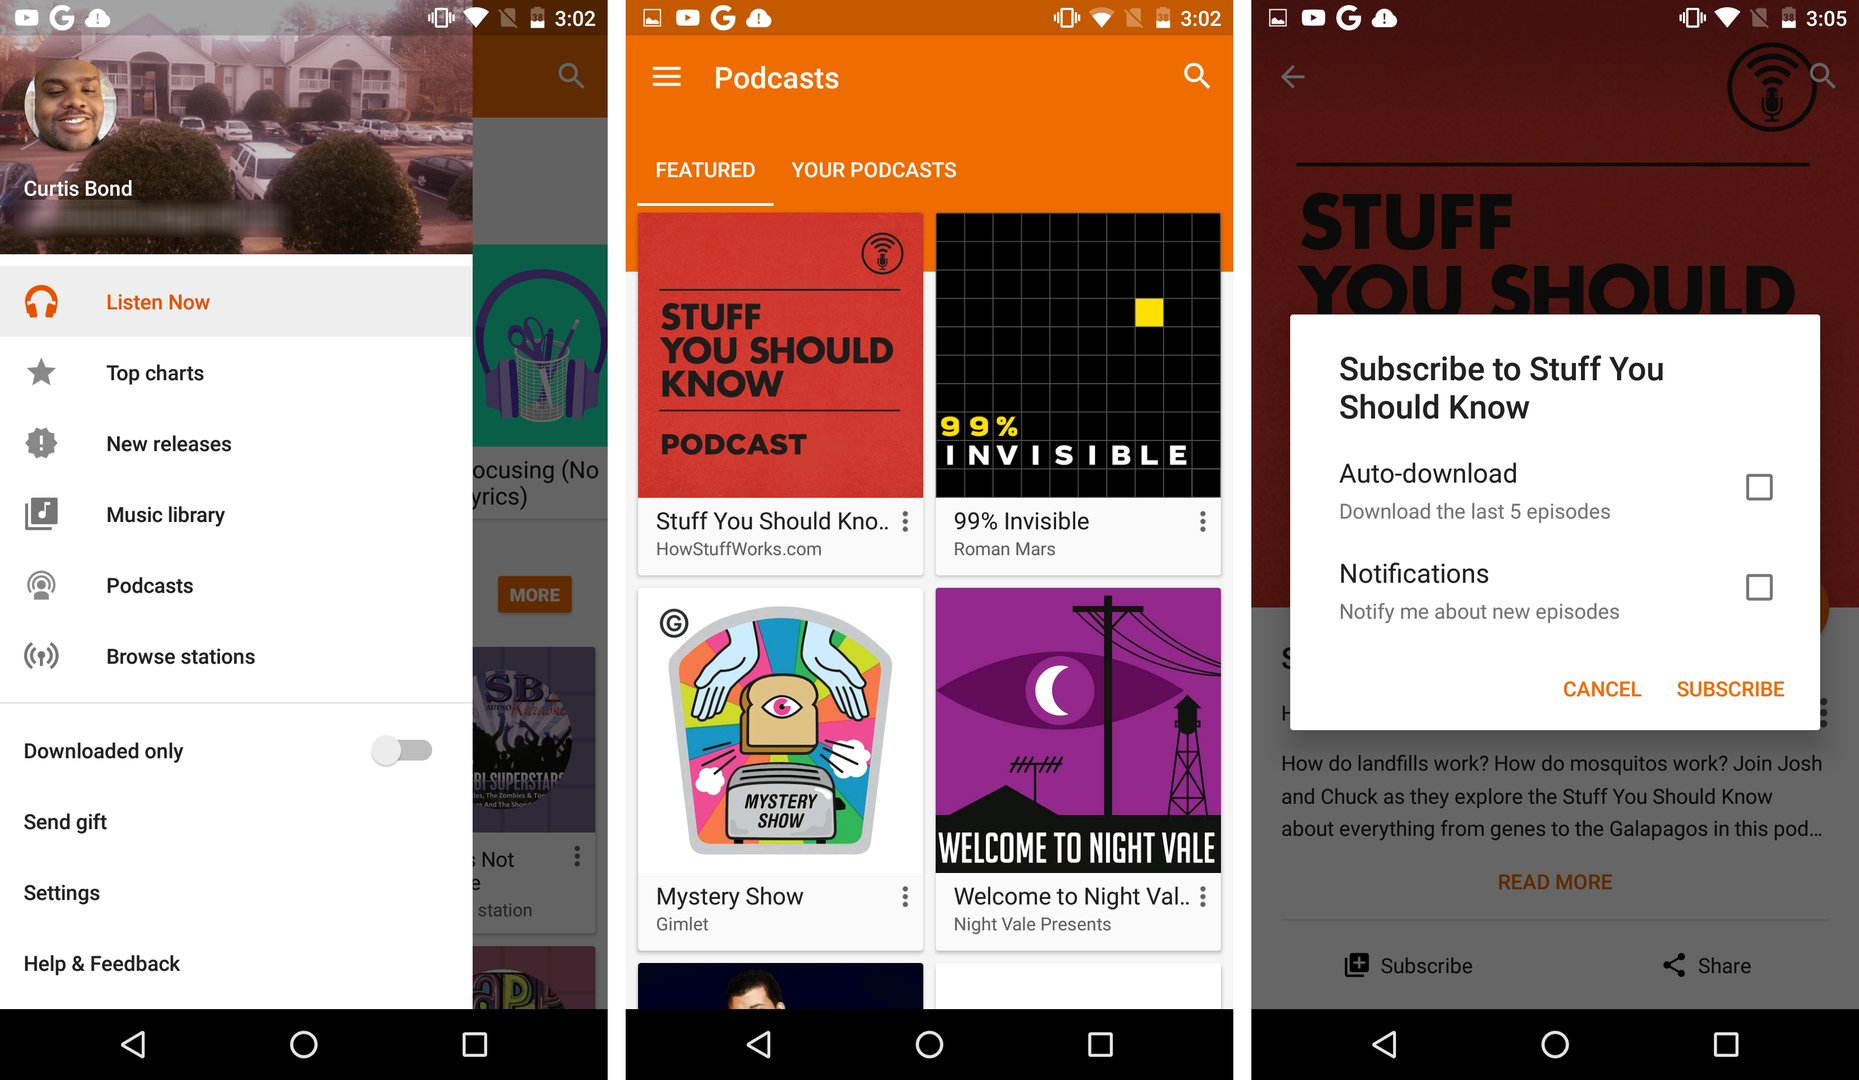 Podcasts in Google Play Music